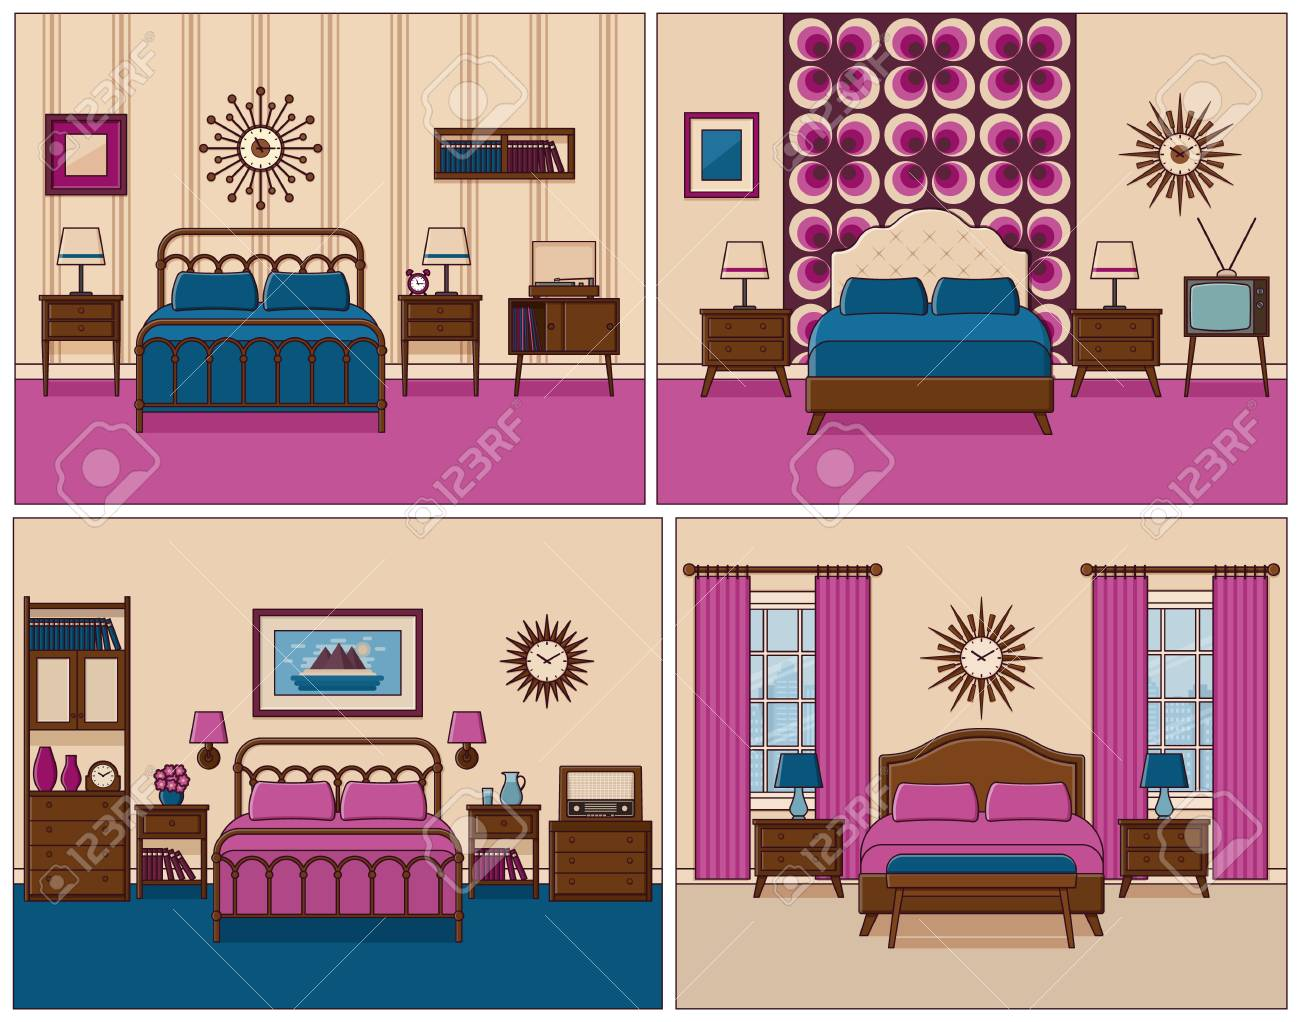 Bedroom Interior. Hotel Rooms With Bed. Vector. Linear Flat Design on 1870's house designs, western house designs, 80's house designs, 1960 home plans and designs, usa house designs, 60s style house designs, late 1800s house designs, victorian house designs, vietnam house designs, jazz house designs, beach house designs, 1960s middle class houses, disney house designs, architectural house designs, 1990s house designs, 1960s construction, 1930 house designs, horror house designs, 1960s bedroom, 1960s graphic design,